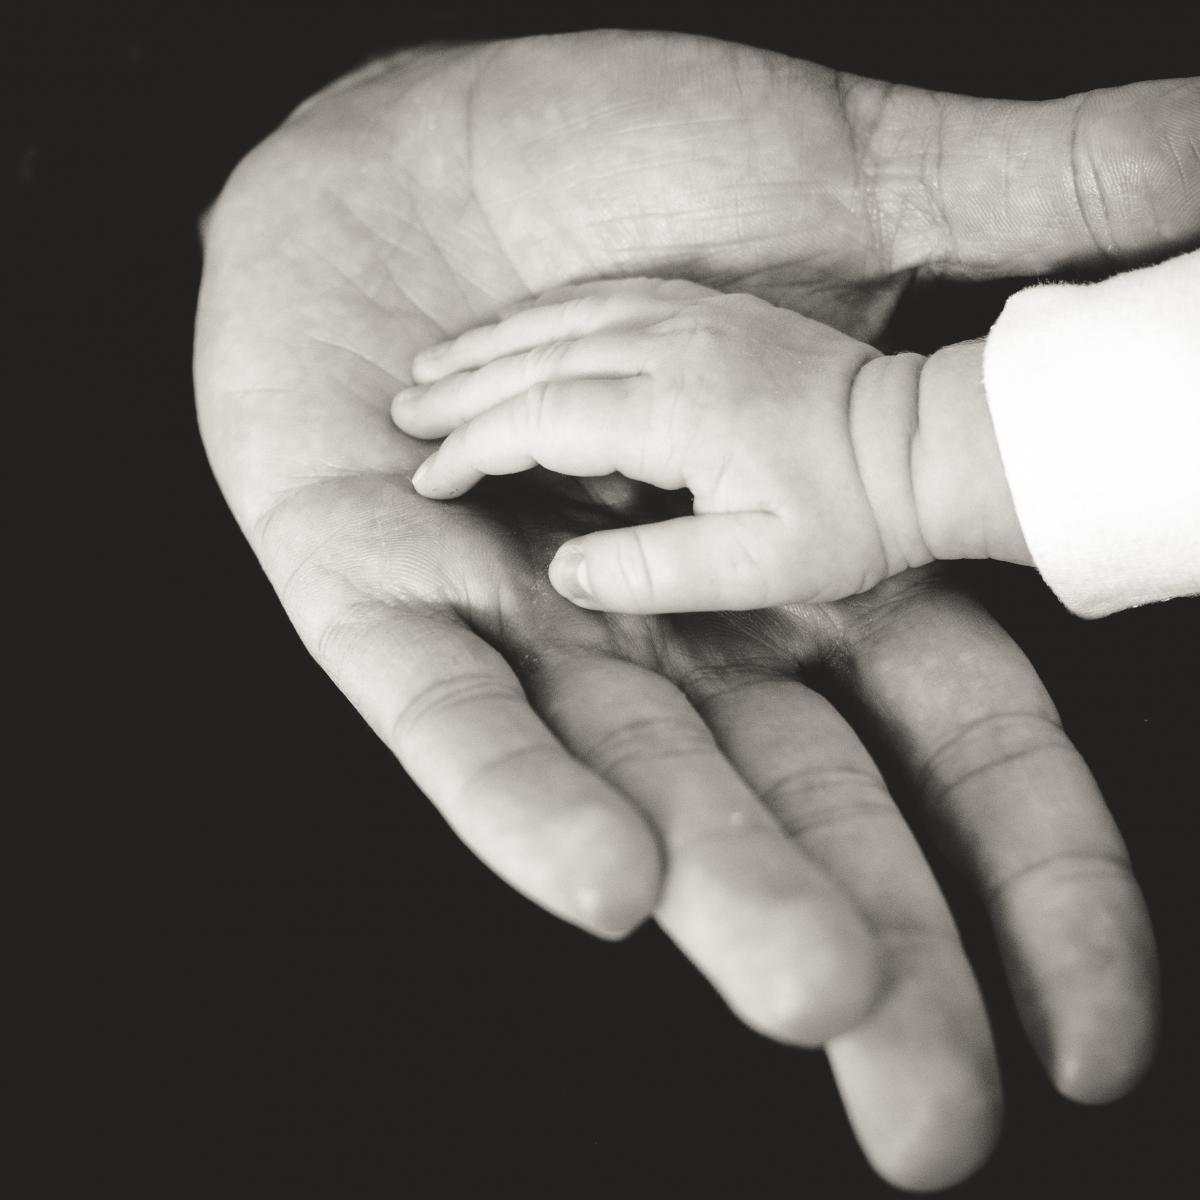 Black and white photo of hand holding infants hand. Photo by Liane Metzler from StockSnap.io